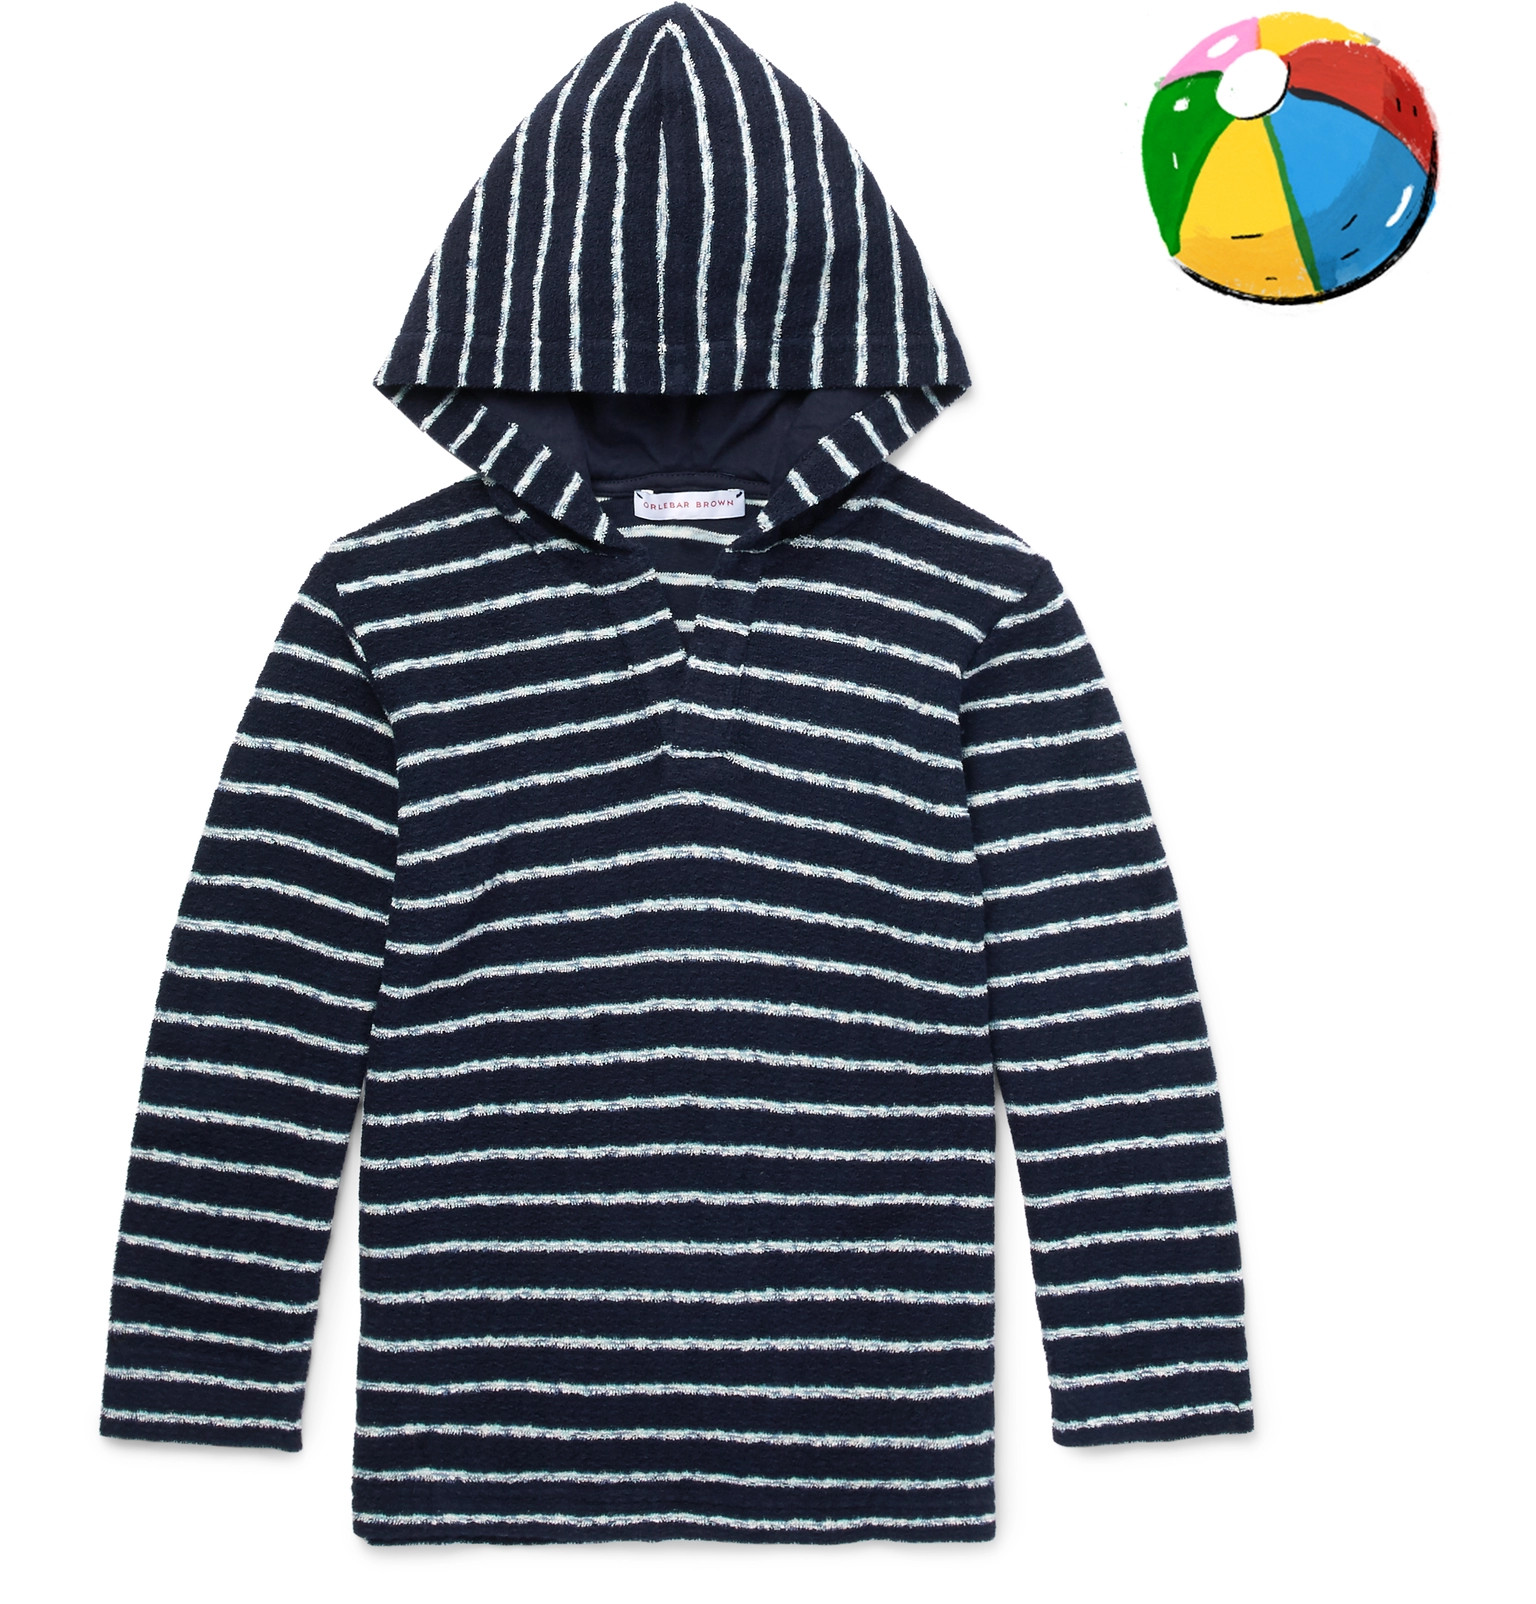 Orlebar Brown Boys Ages 4 - 12 Harley Striped Cotton-terry Hoodie - Navy zHZLD